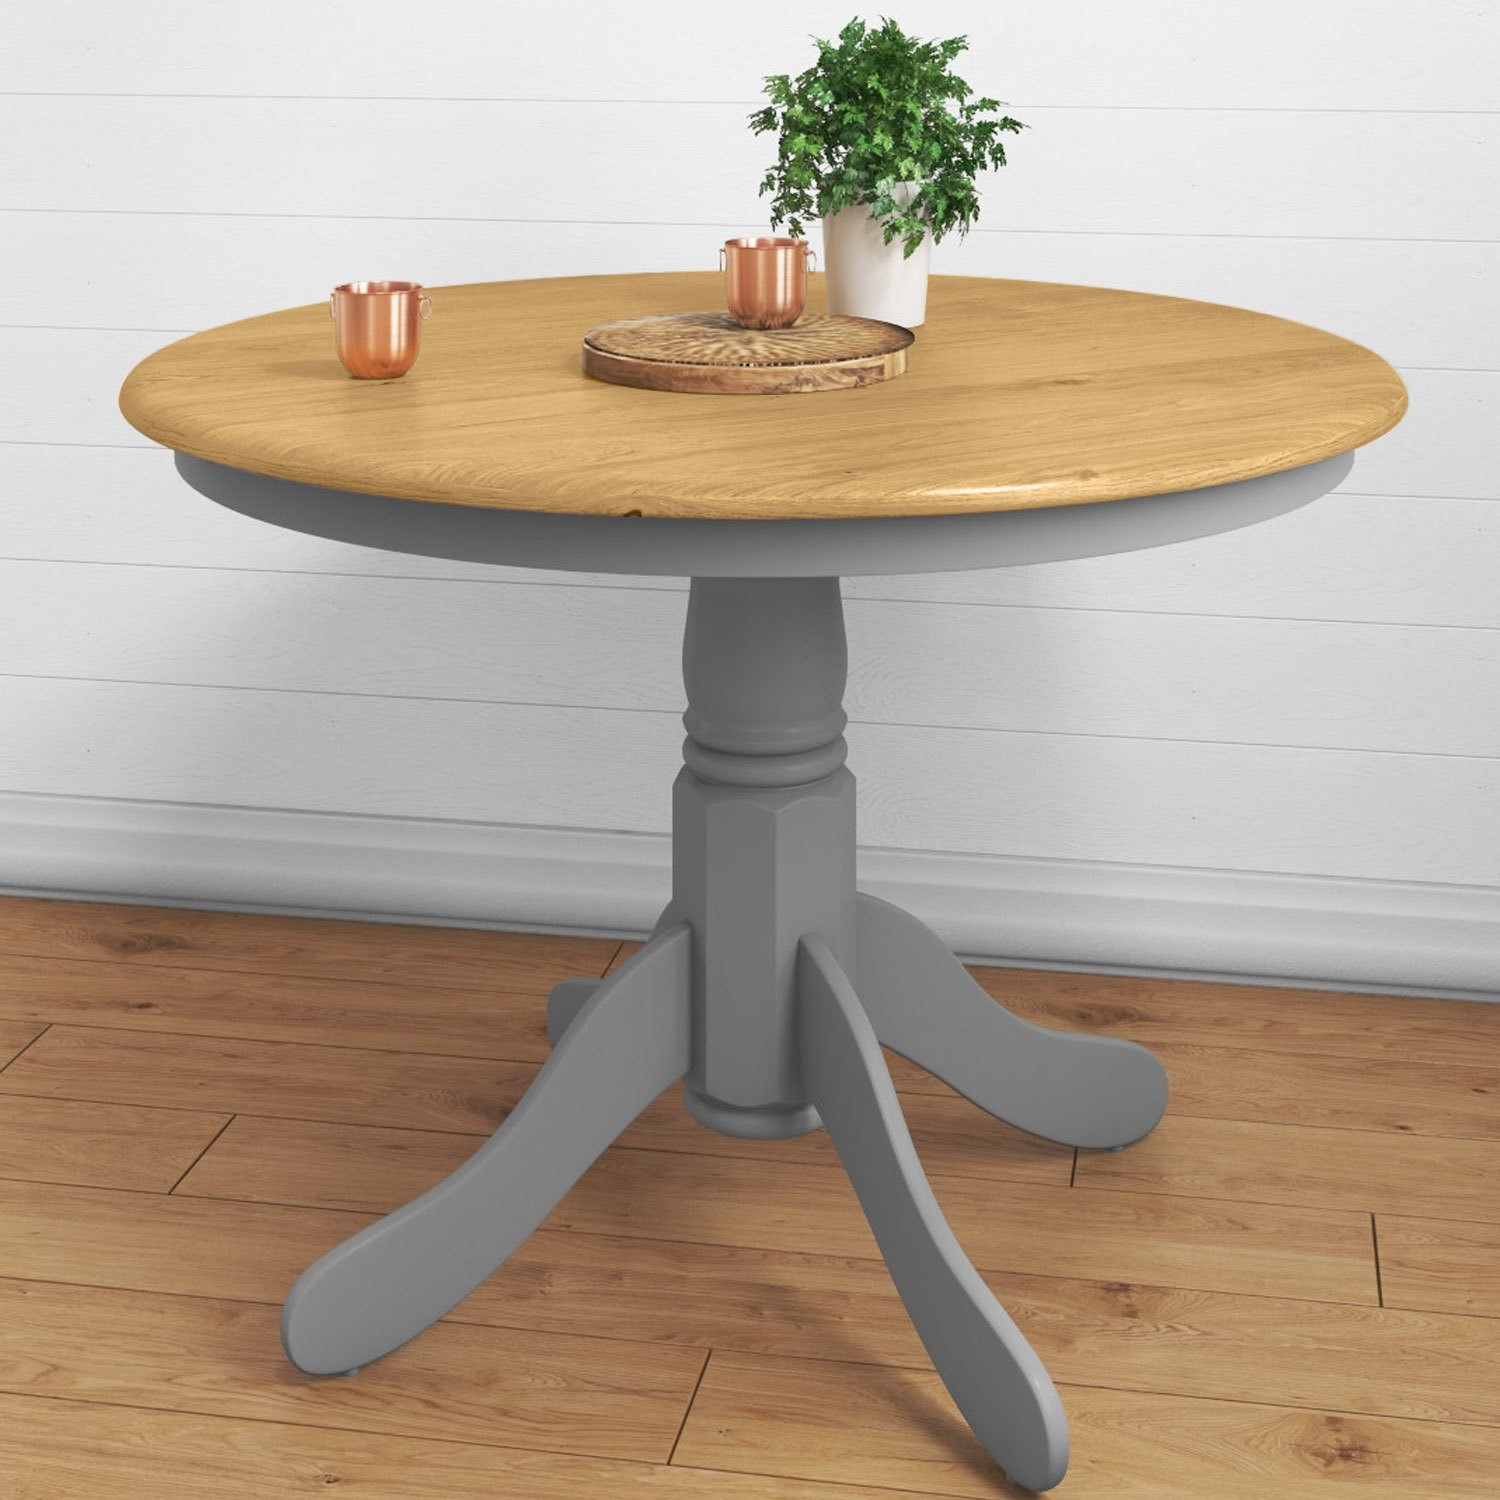 Small Round Dining Table In Grey Oak Finish Seats 4 Rhode Island Furniture123